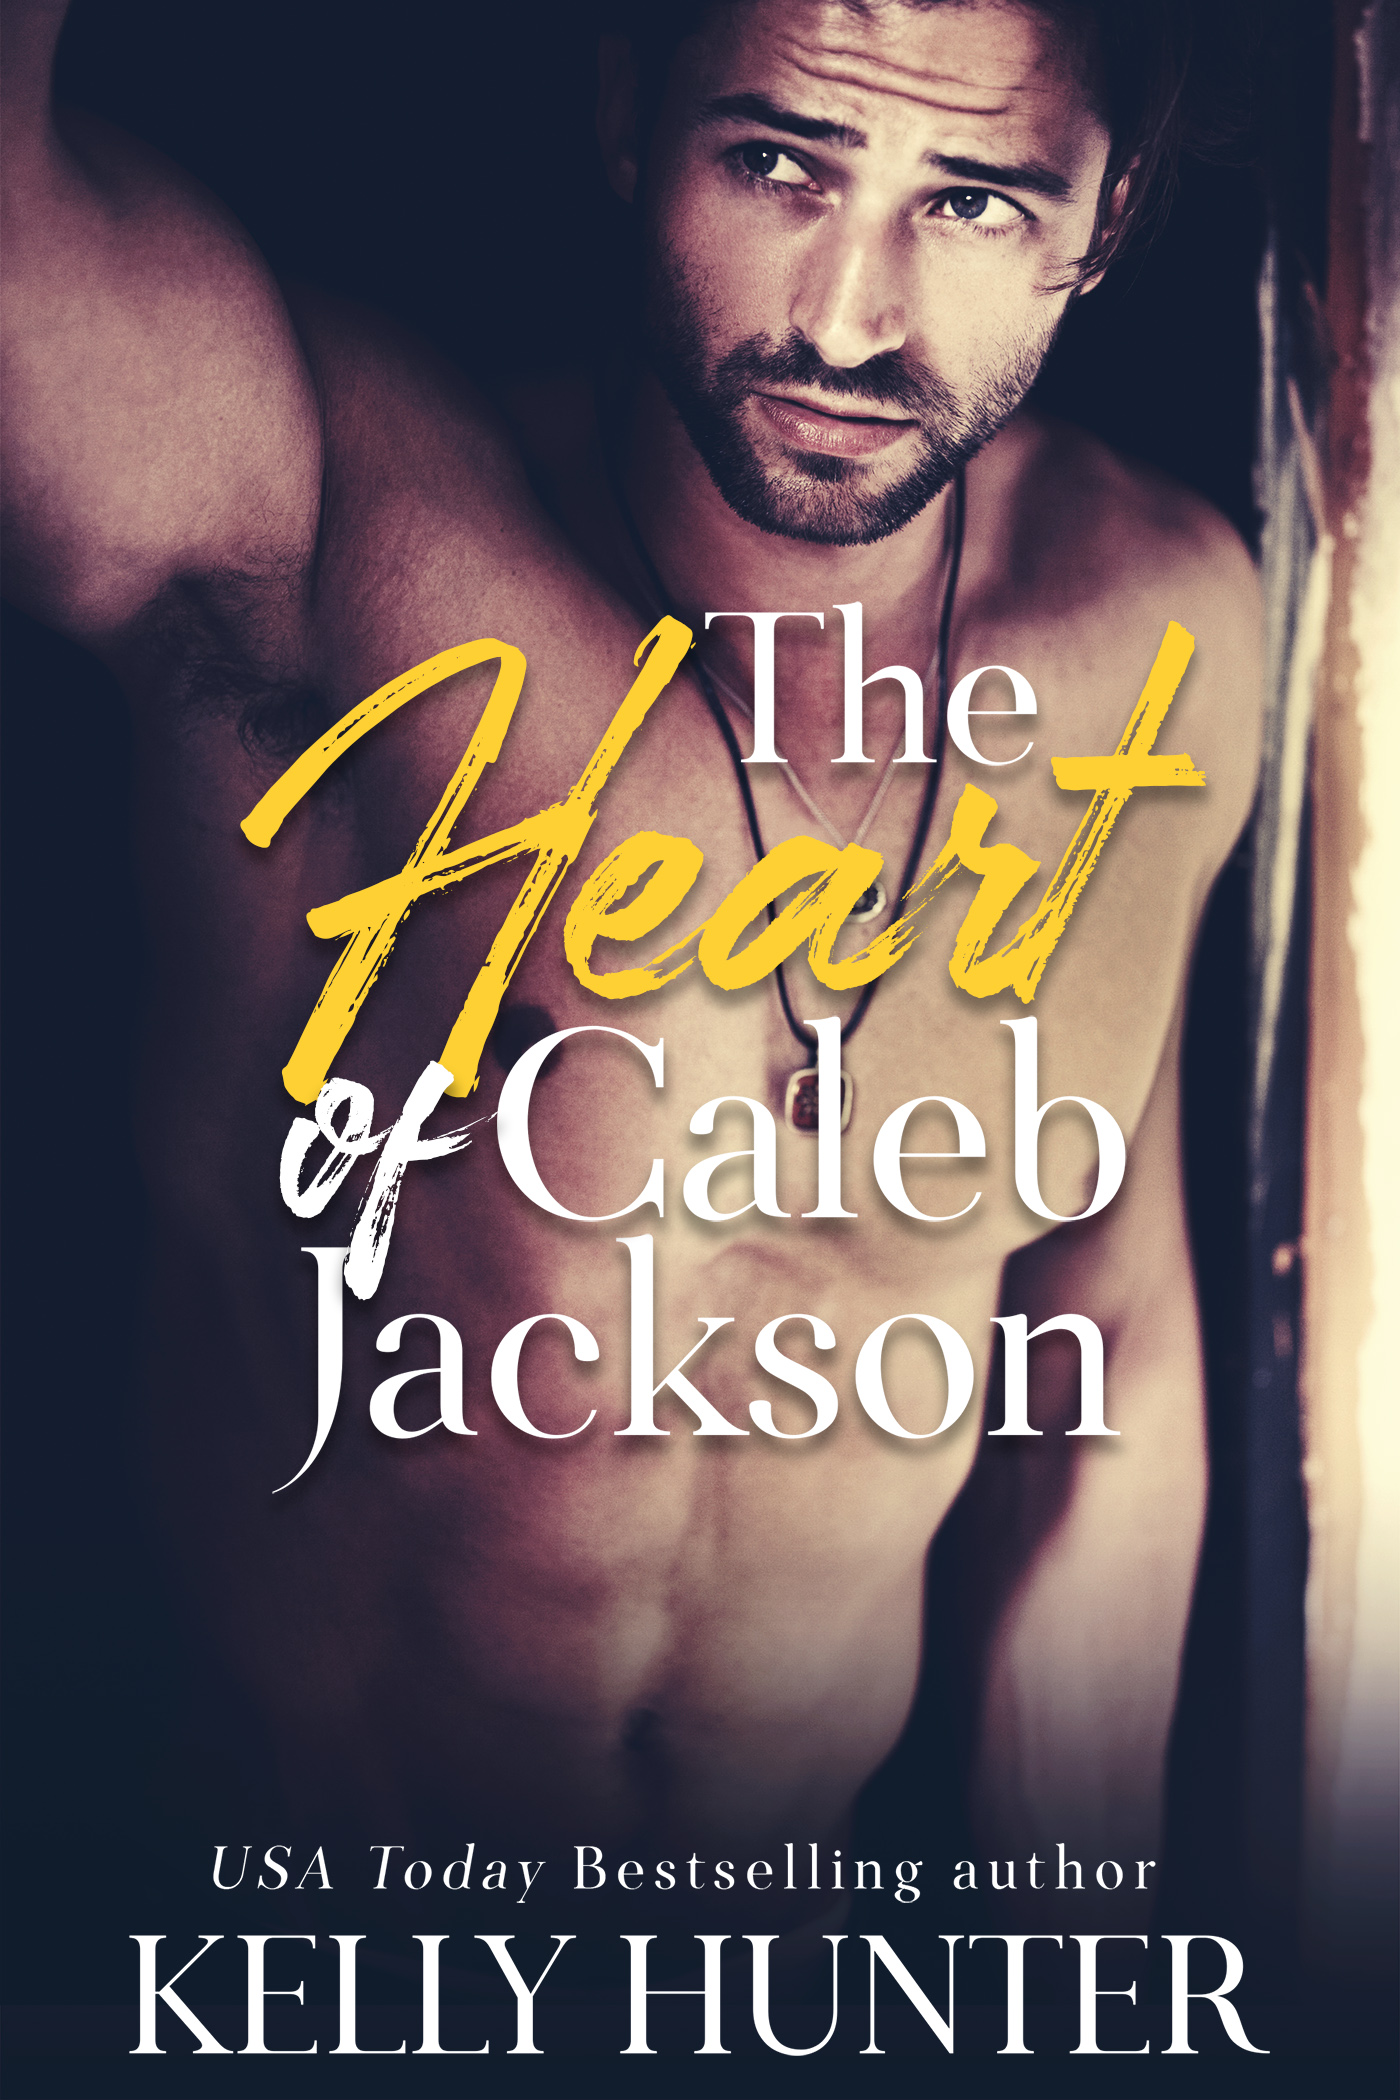 The Heart of Caleb Jackson by Kelly Hunter